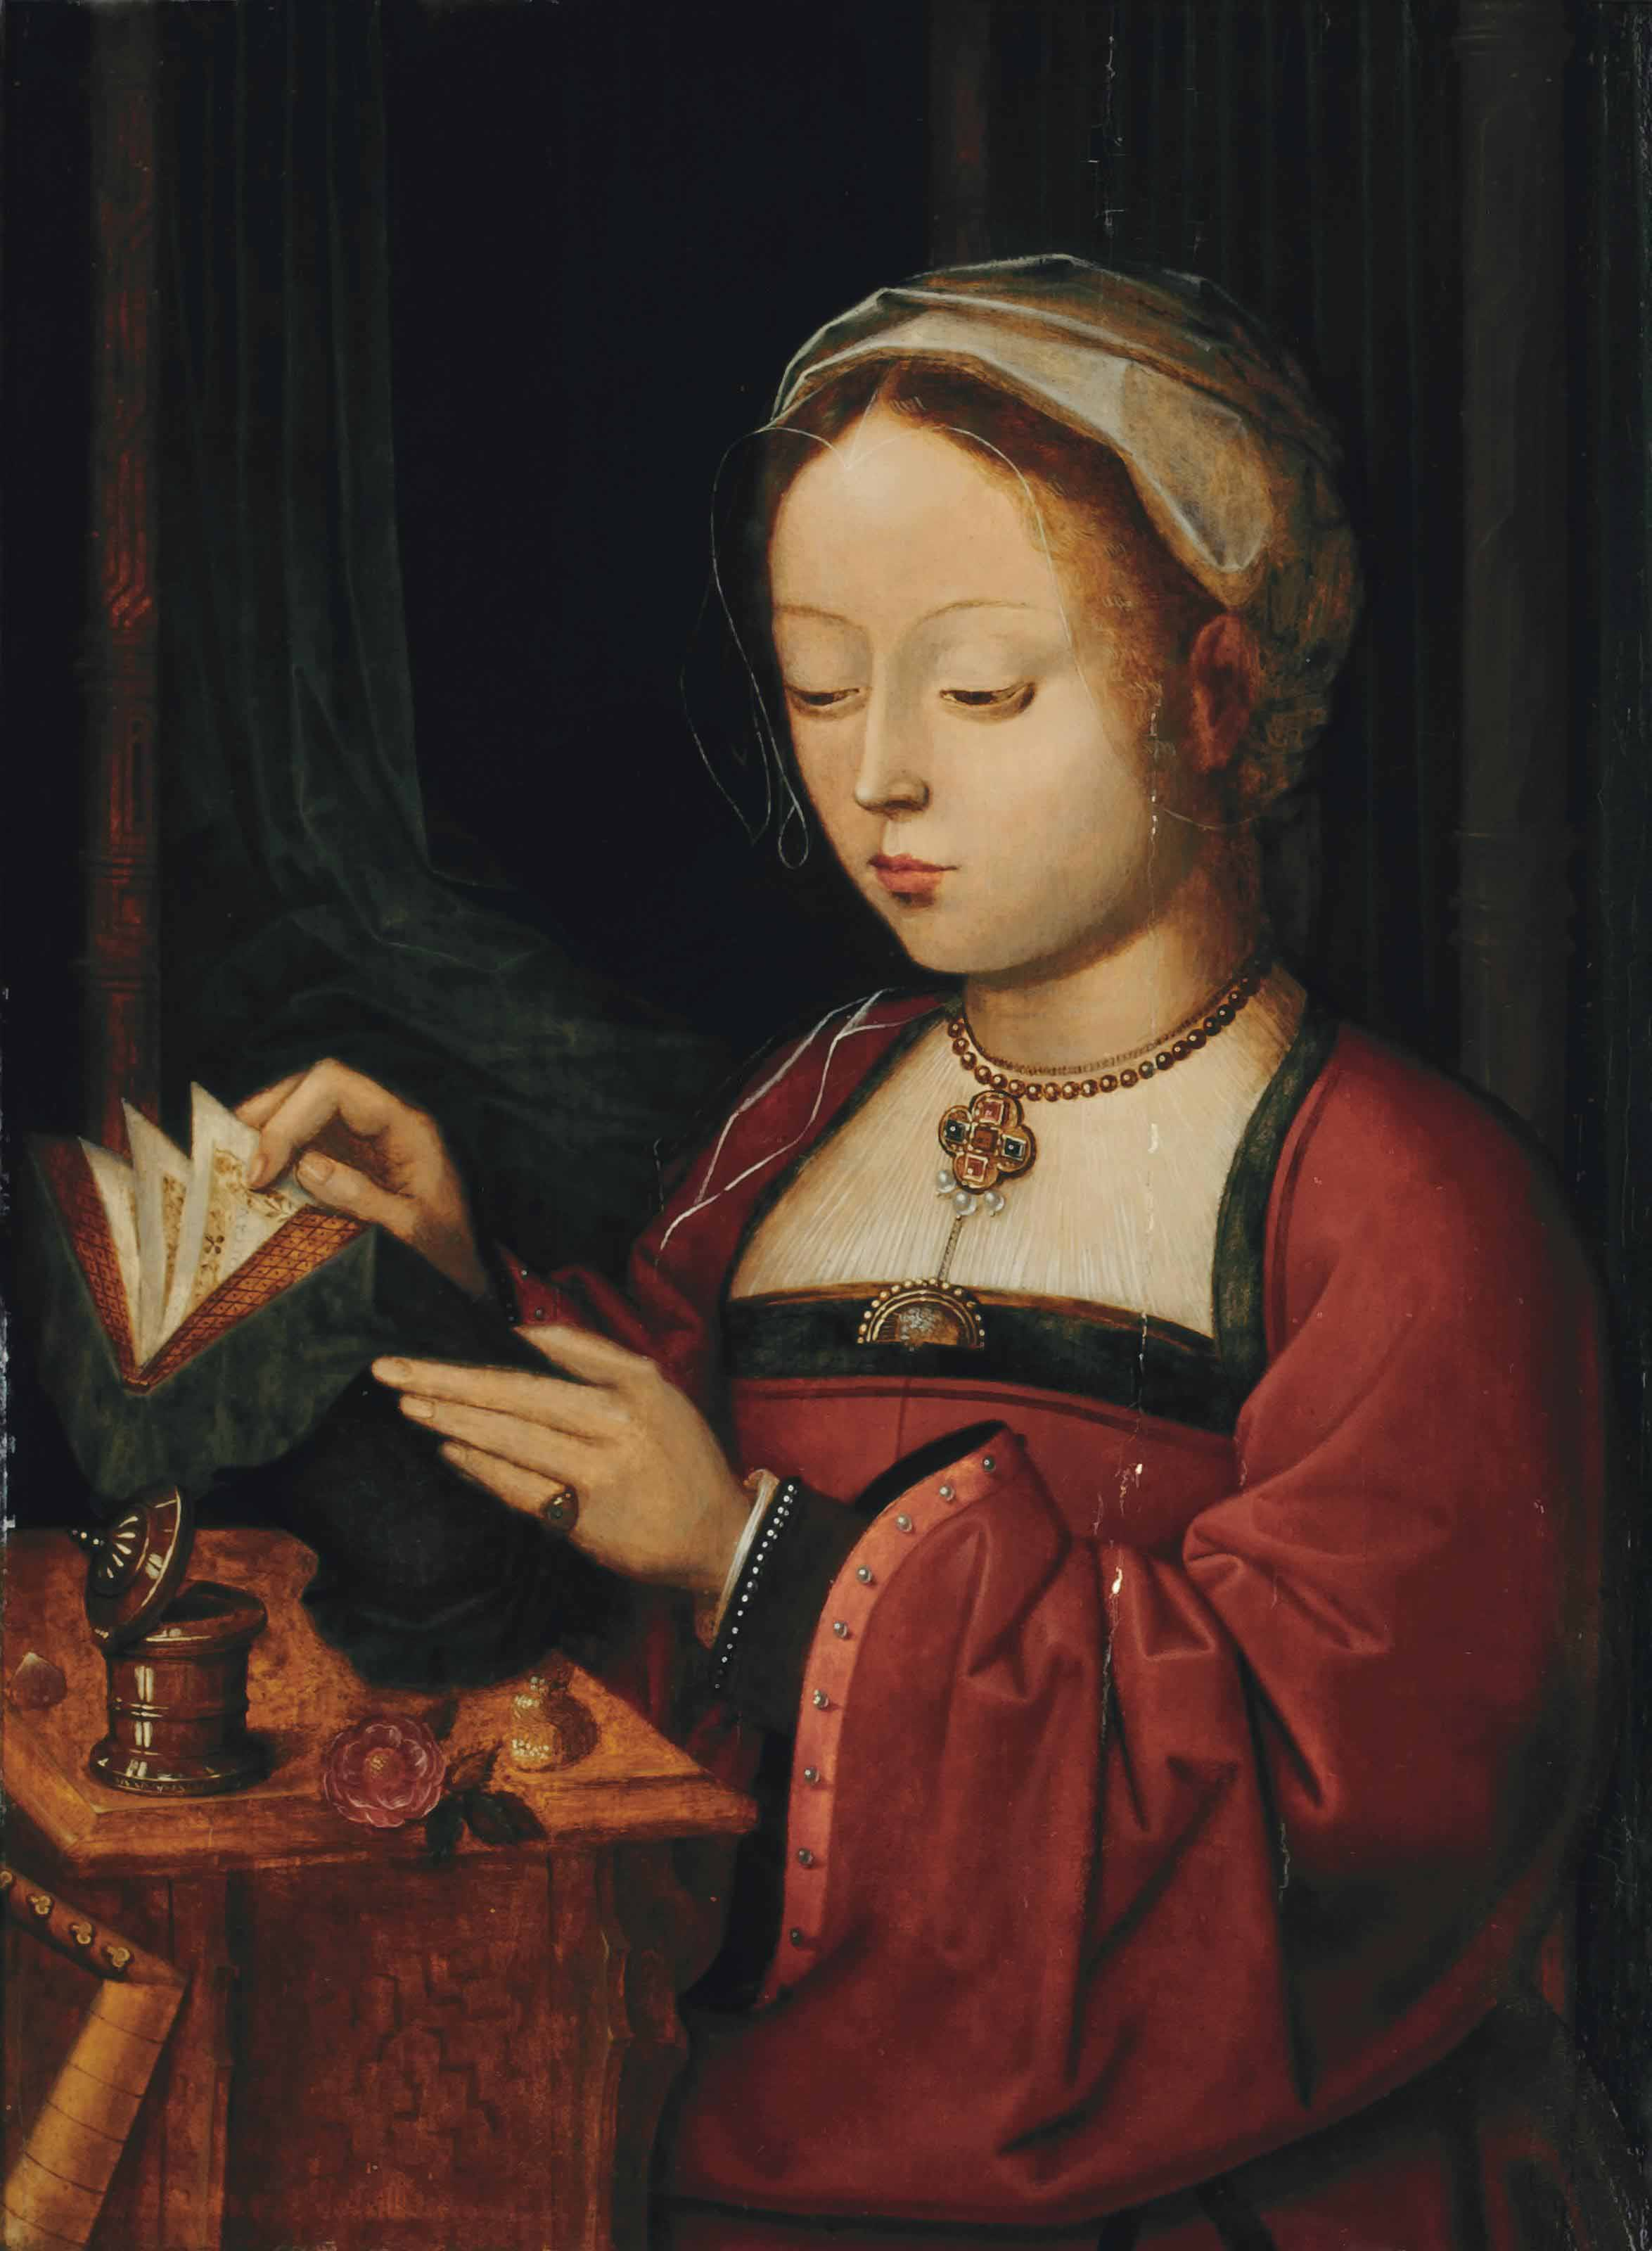 Saint Mary Magdalene reading at a table, with a red rose before her